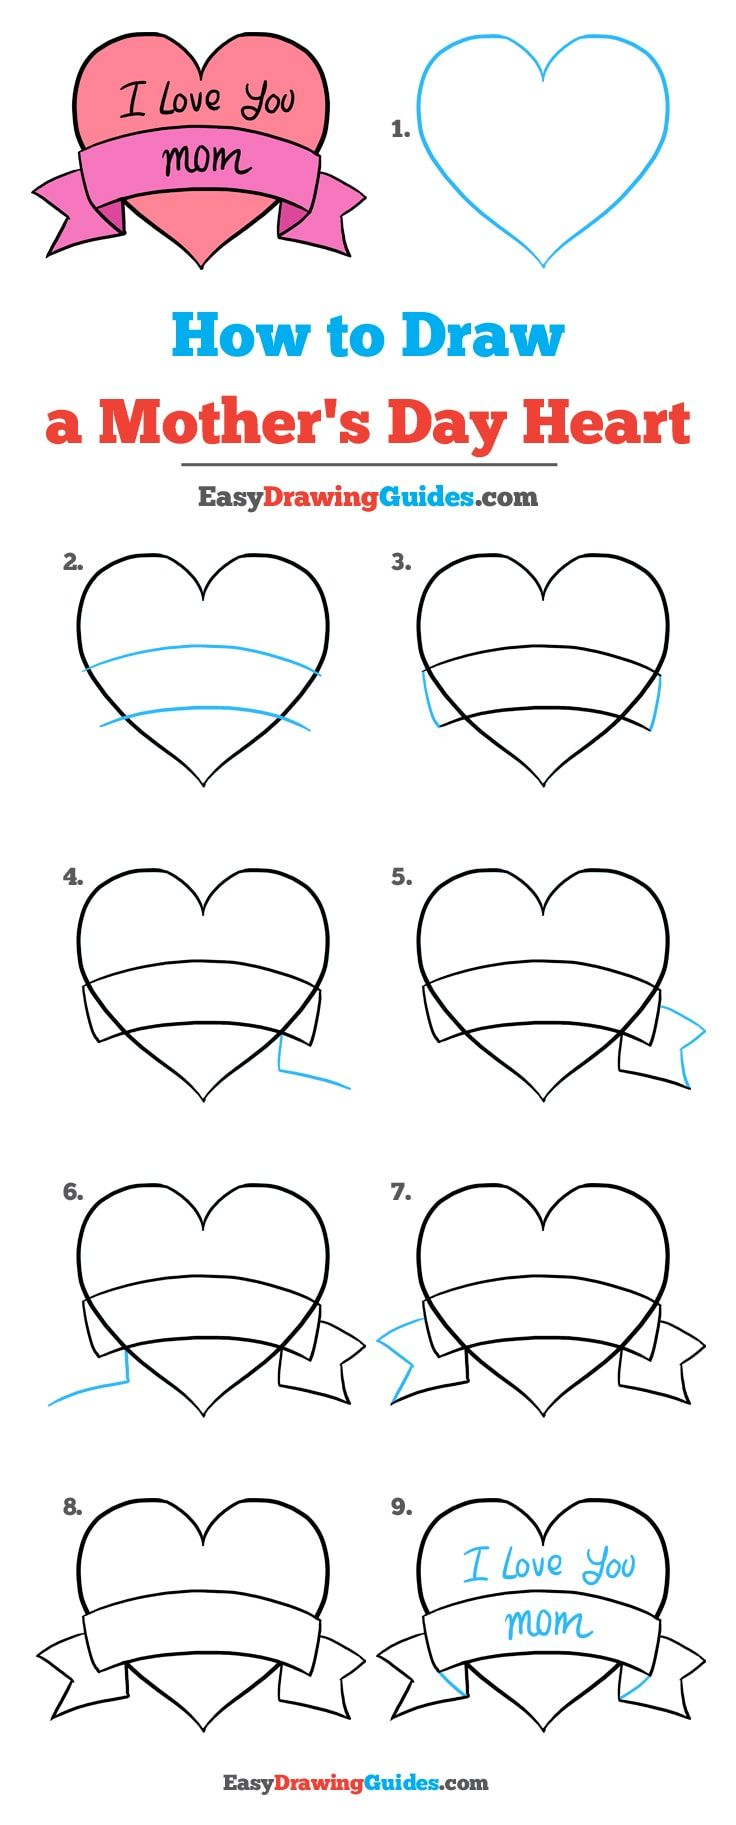 How to Draw a Mother's Day Heart - Really Easy Drawing